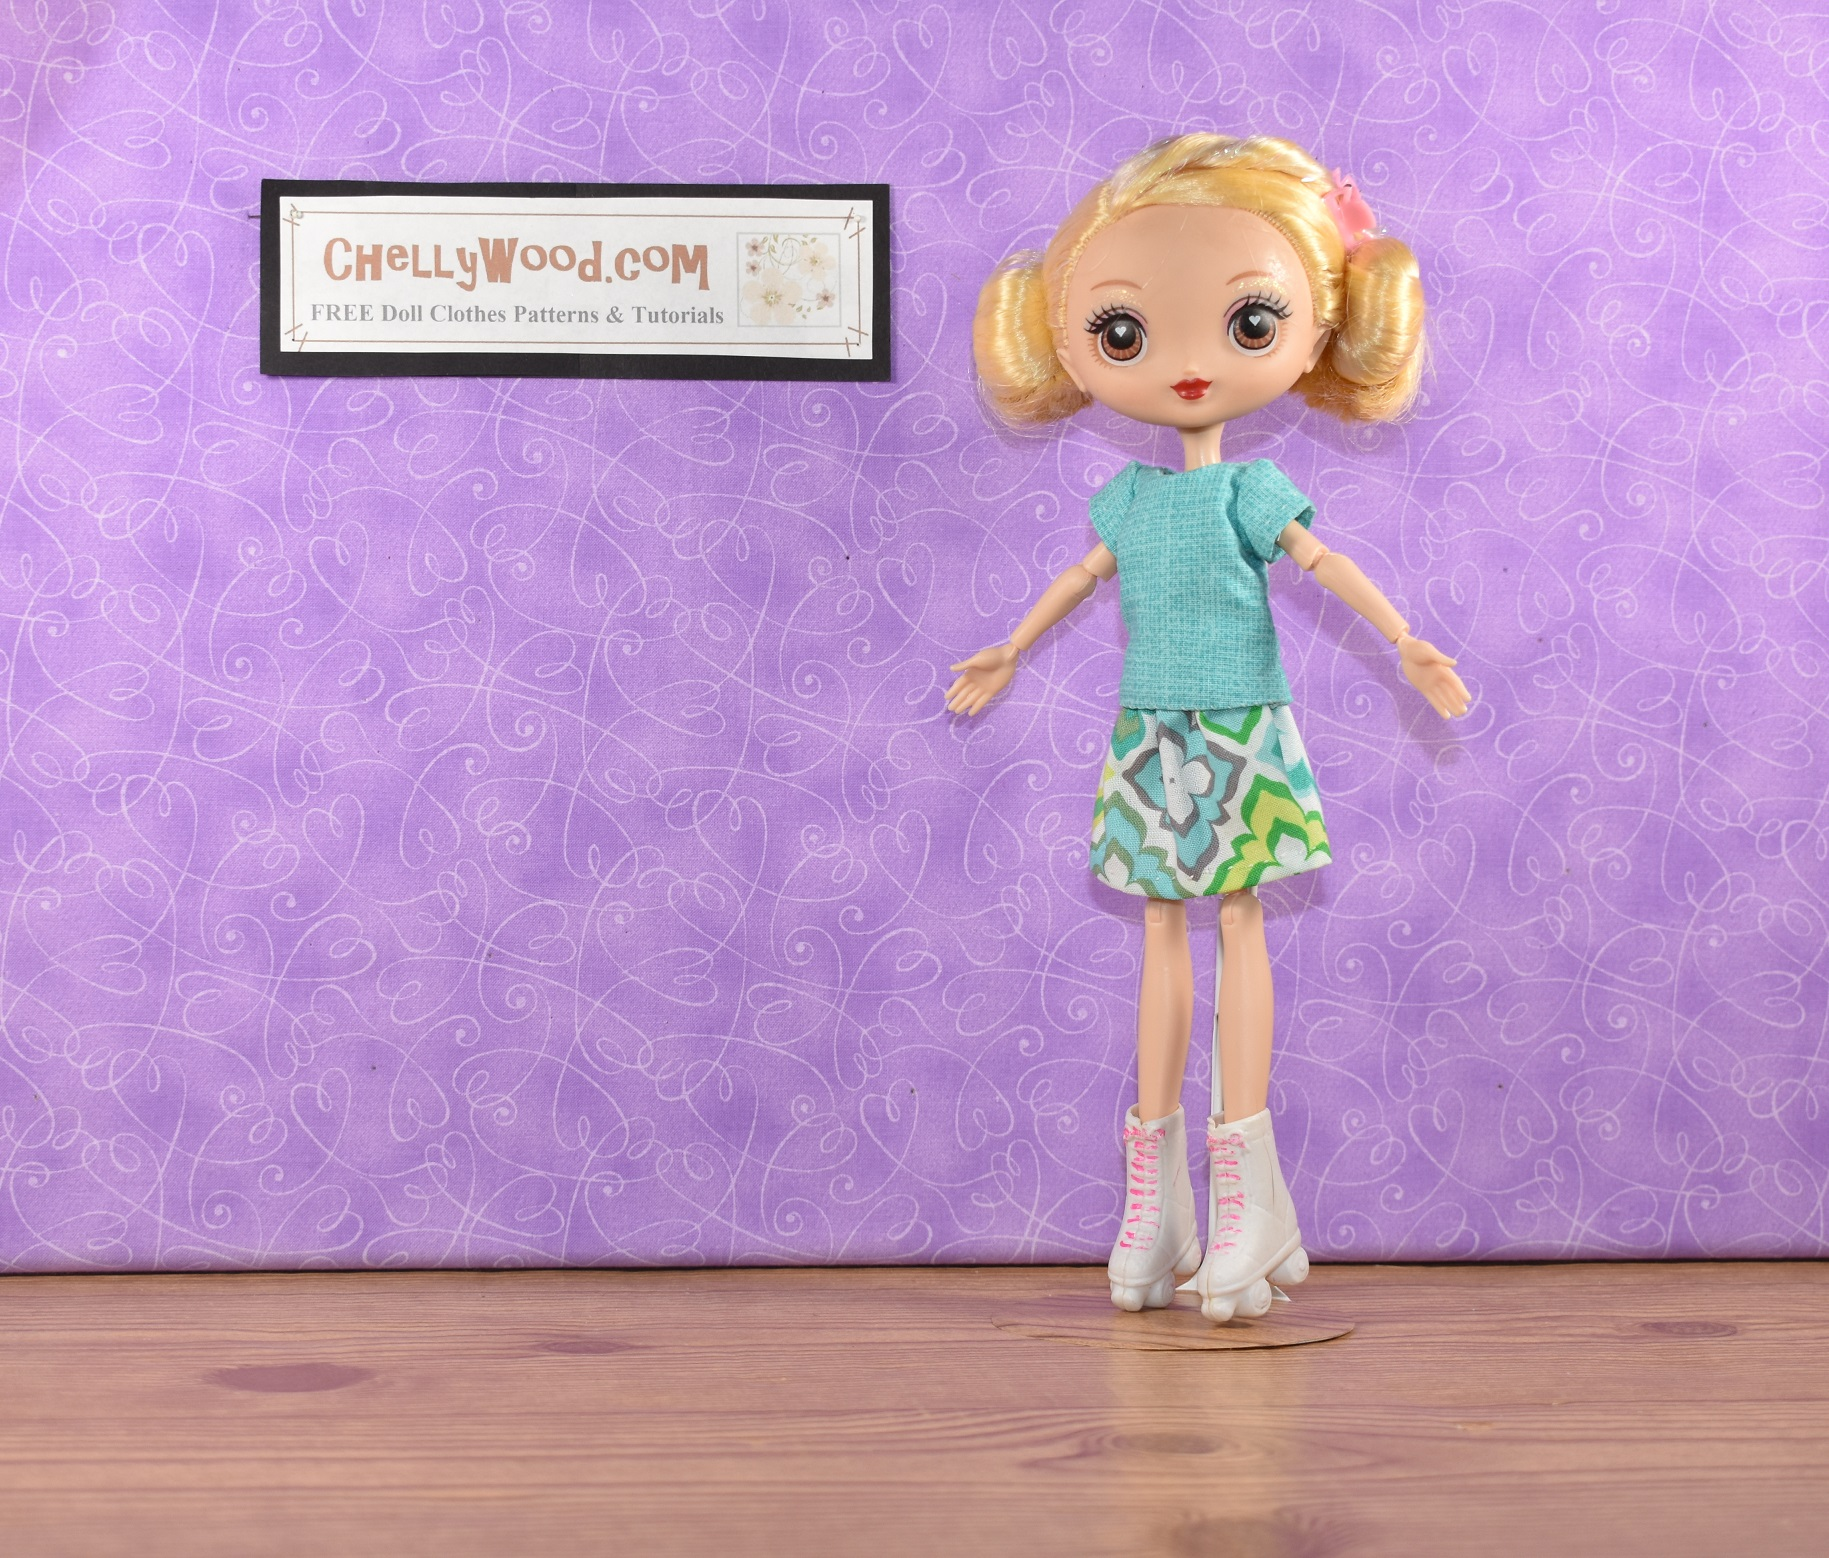 If you're here to find the free patterns for sewing doll clothes to fit your Kuu Kuu Harajuku fashion dolls, please click on the link in the caption. The image shows a Kuu Kuu Harajuku G doll wearing a handmade skirt and matching handmade cotton shirt. The doll wears roller skates, and she has a pink hair clip holding her bangs back. Her enormous eyes look straight at the camera, and the wall behind her tells where you can download the free patterns for sewing this skirt and top: ChellyWood.com